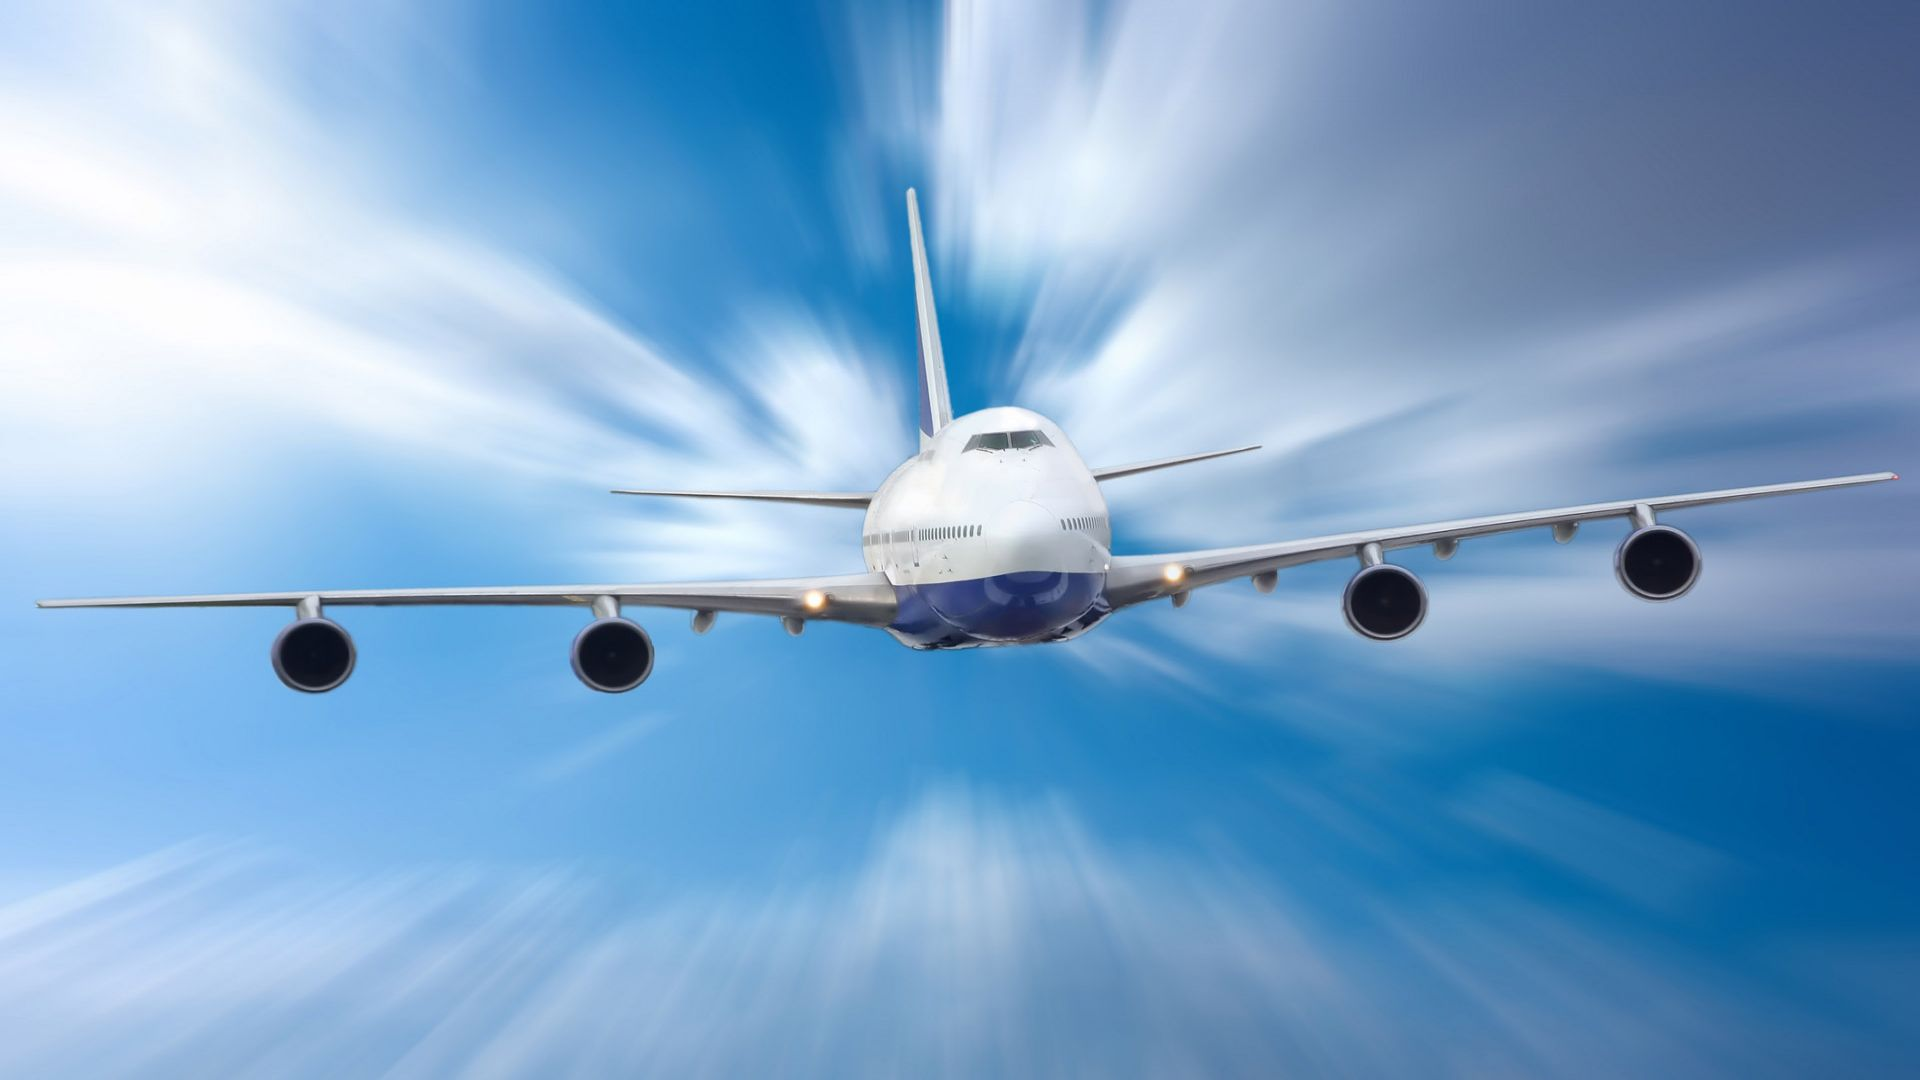 Global Aviation cyber security market size, share forecast, 2015-2019 explored in new market research report - Adeptis Group   Cyber Security Job Search and ...